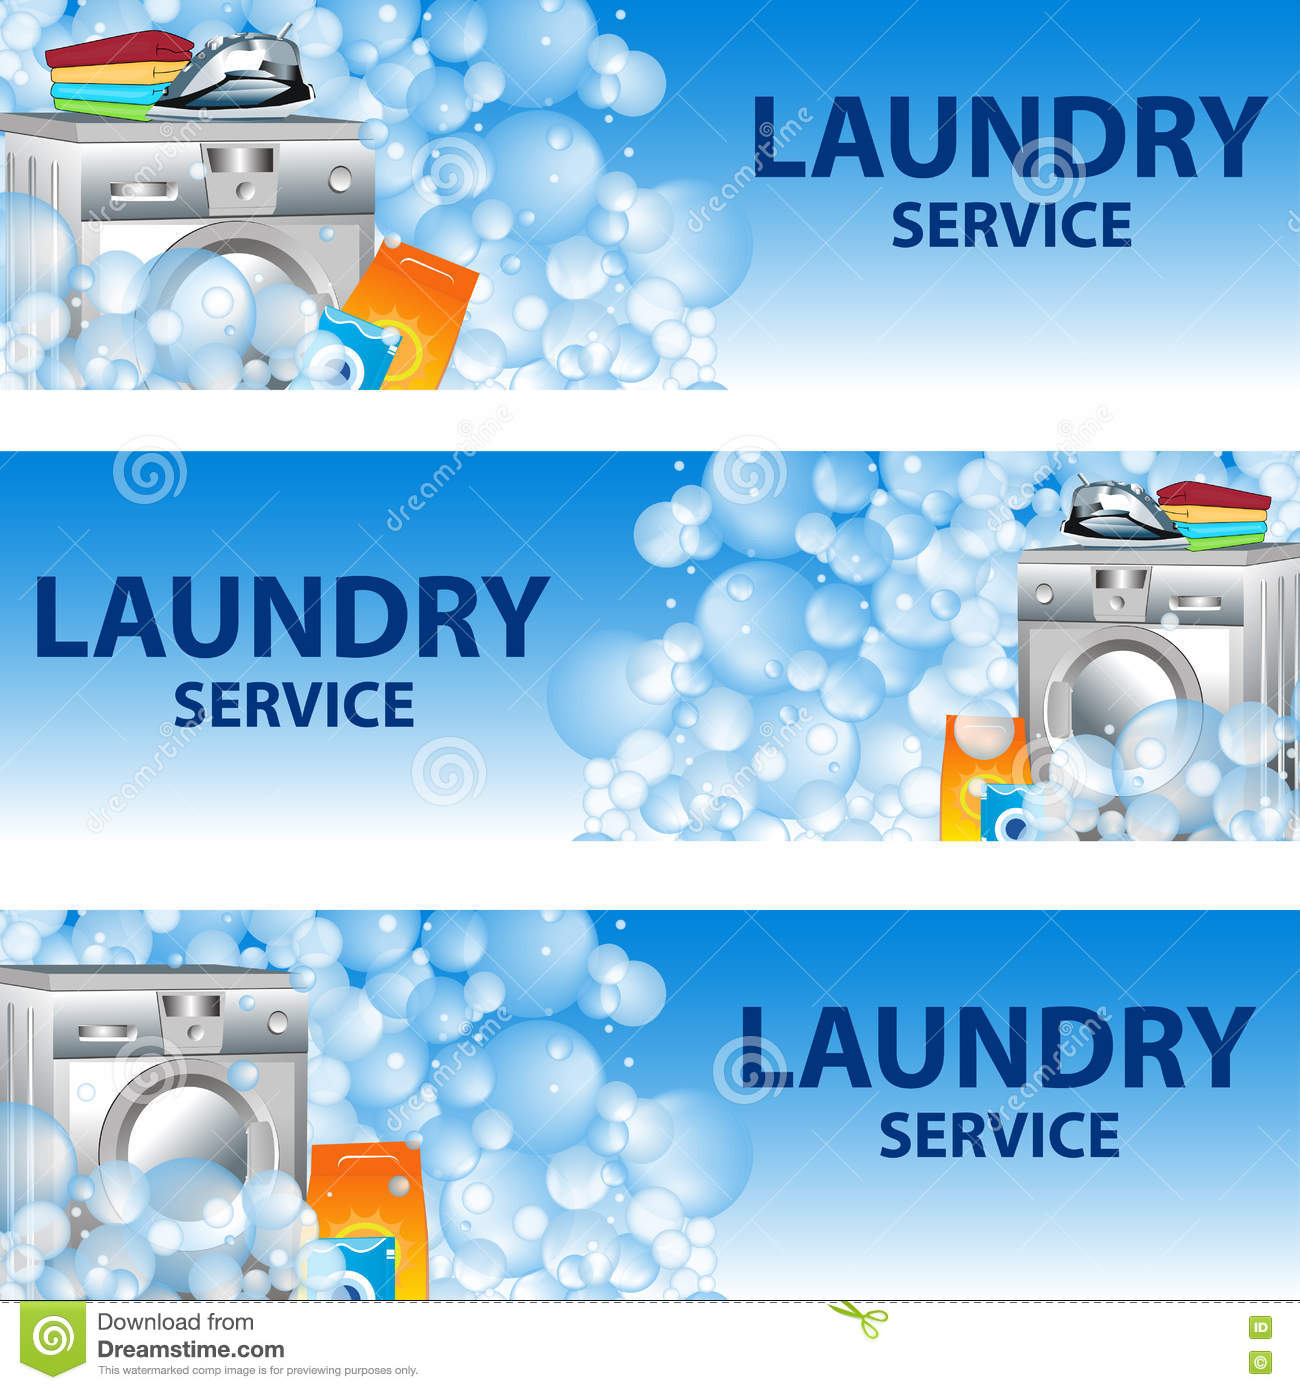 laundry services flyer template stock photography image  poster template for house cleaning royalty stock image